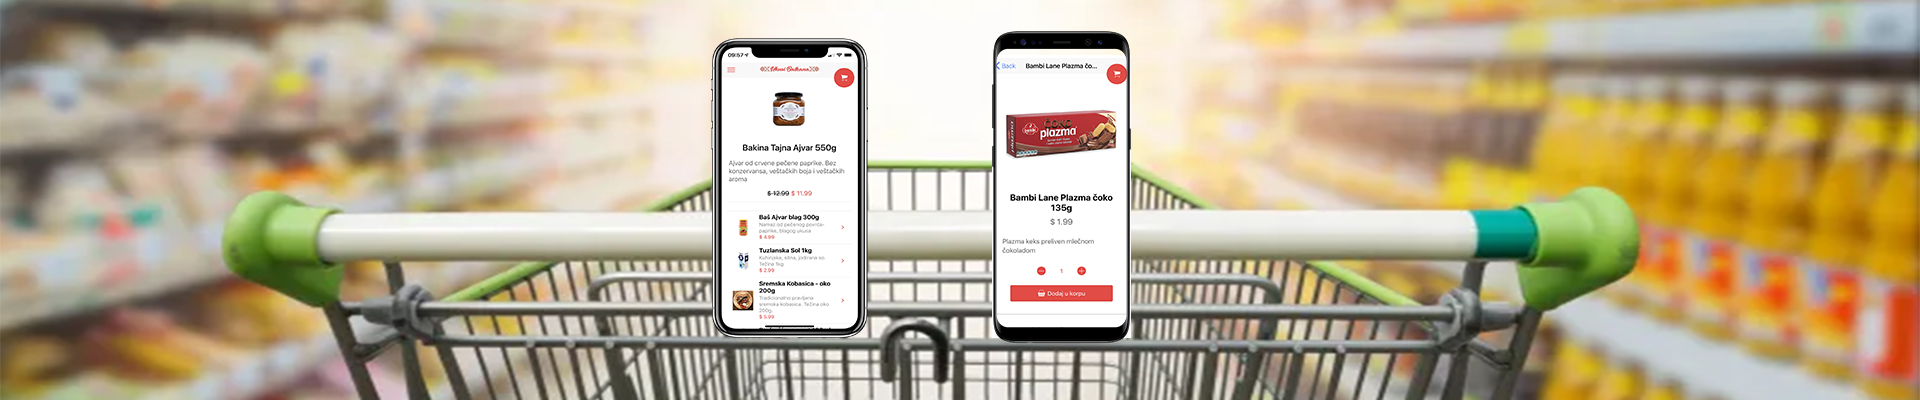 Shop Faster with our ios and android app!